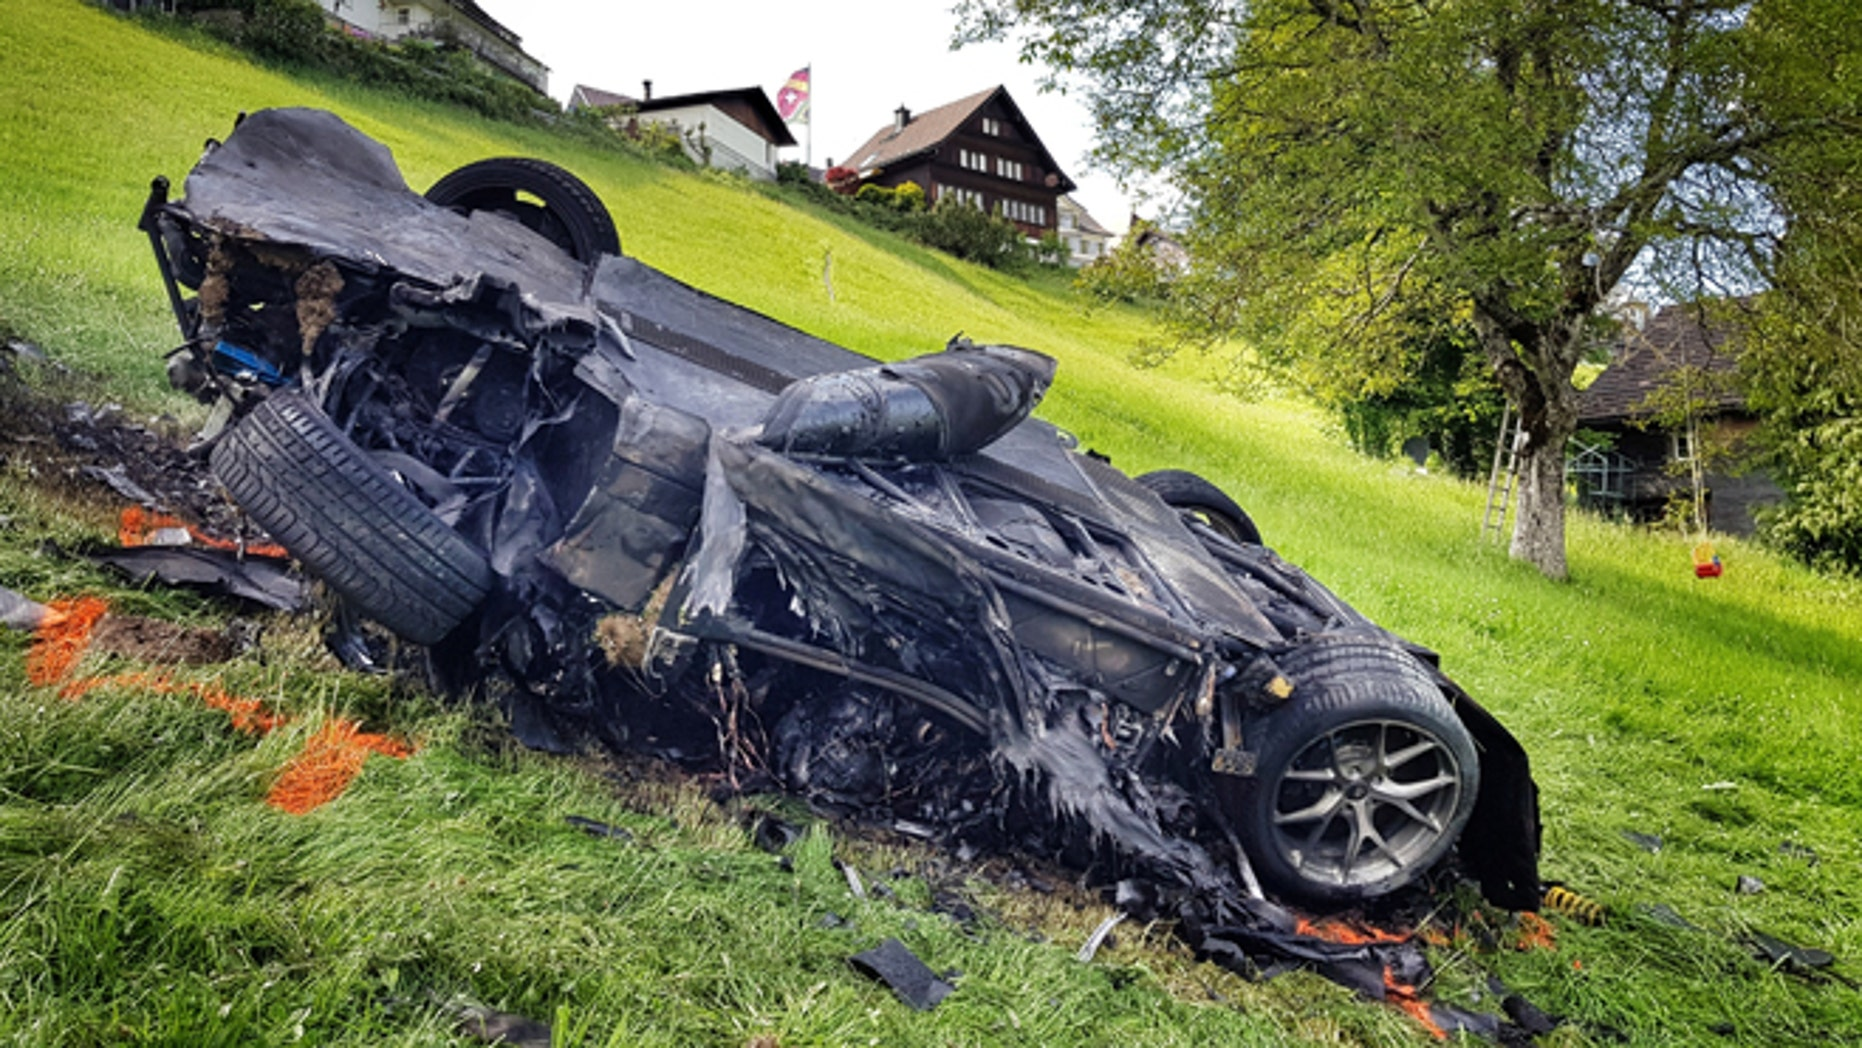 The car that was involved in a crash where Richard Hammond escaped serious injury in Switzerland.